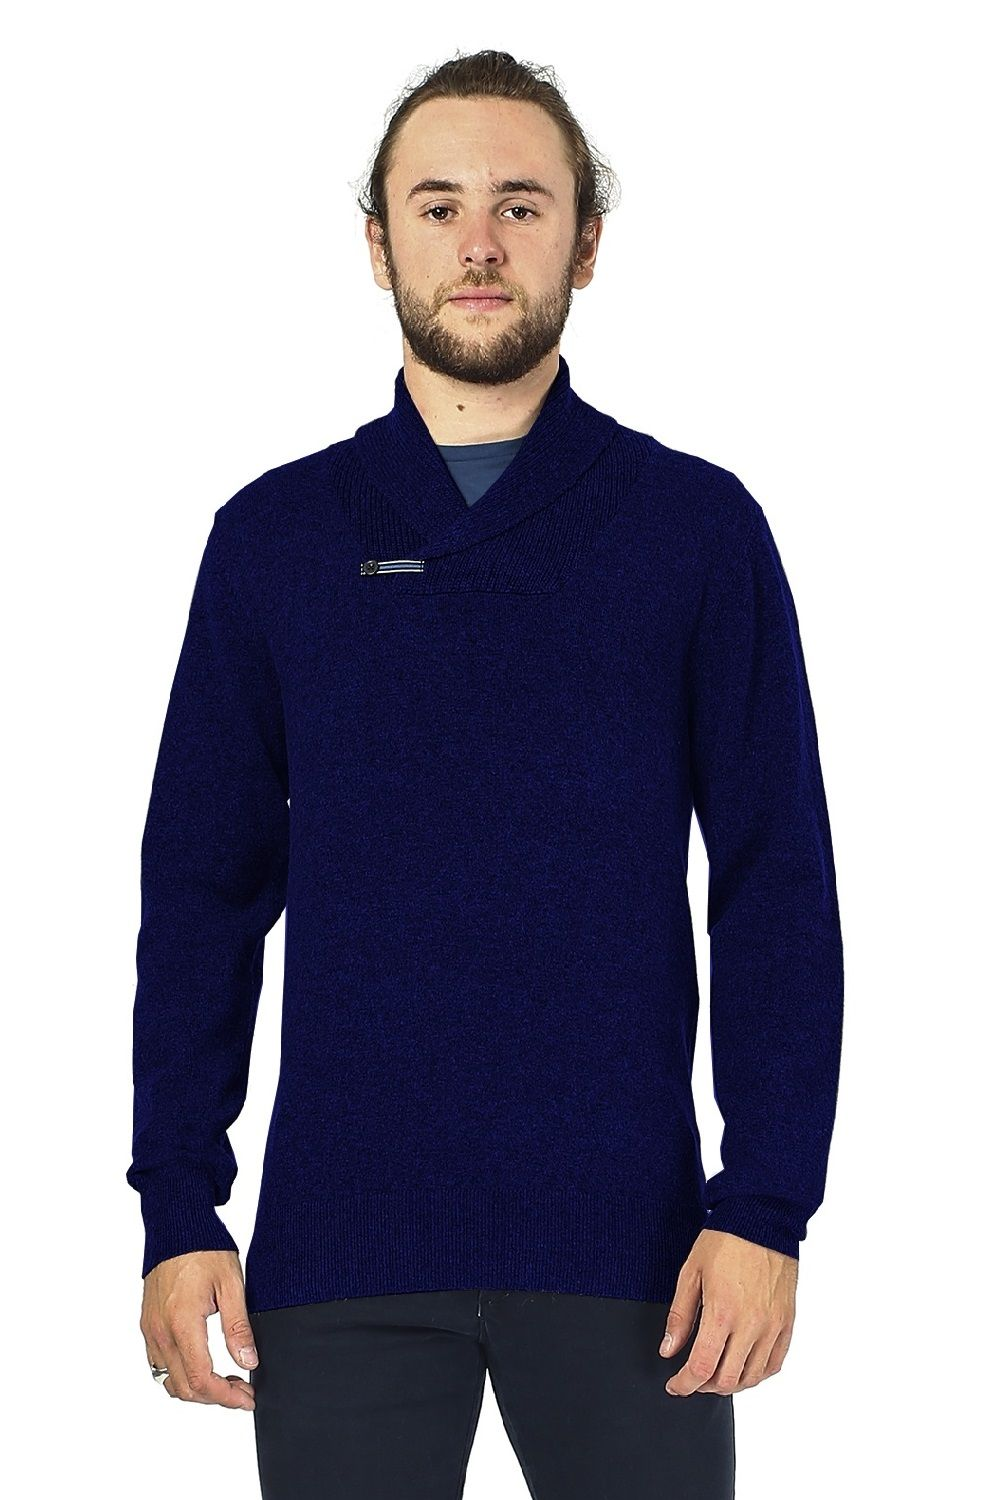 William De Faye Shawl Neck Sweater with Leather Buckle in Navy